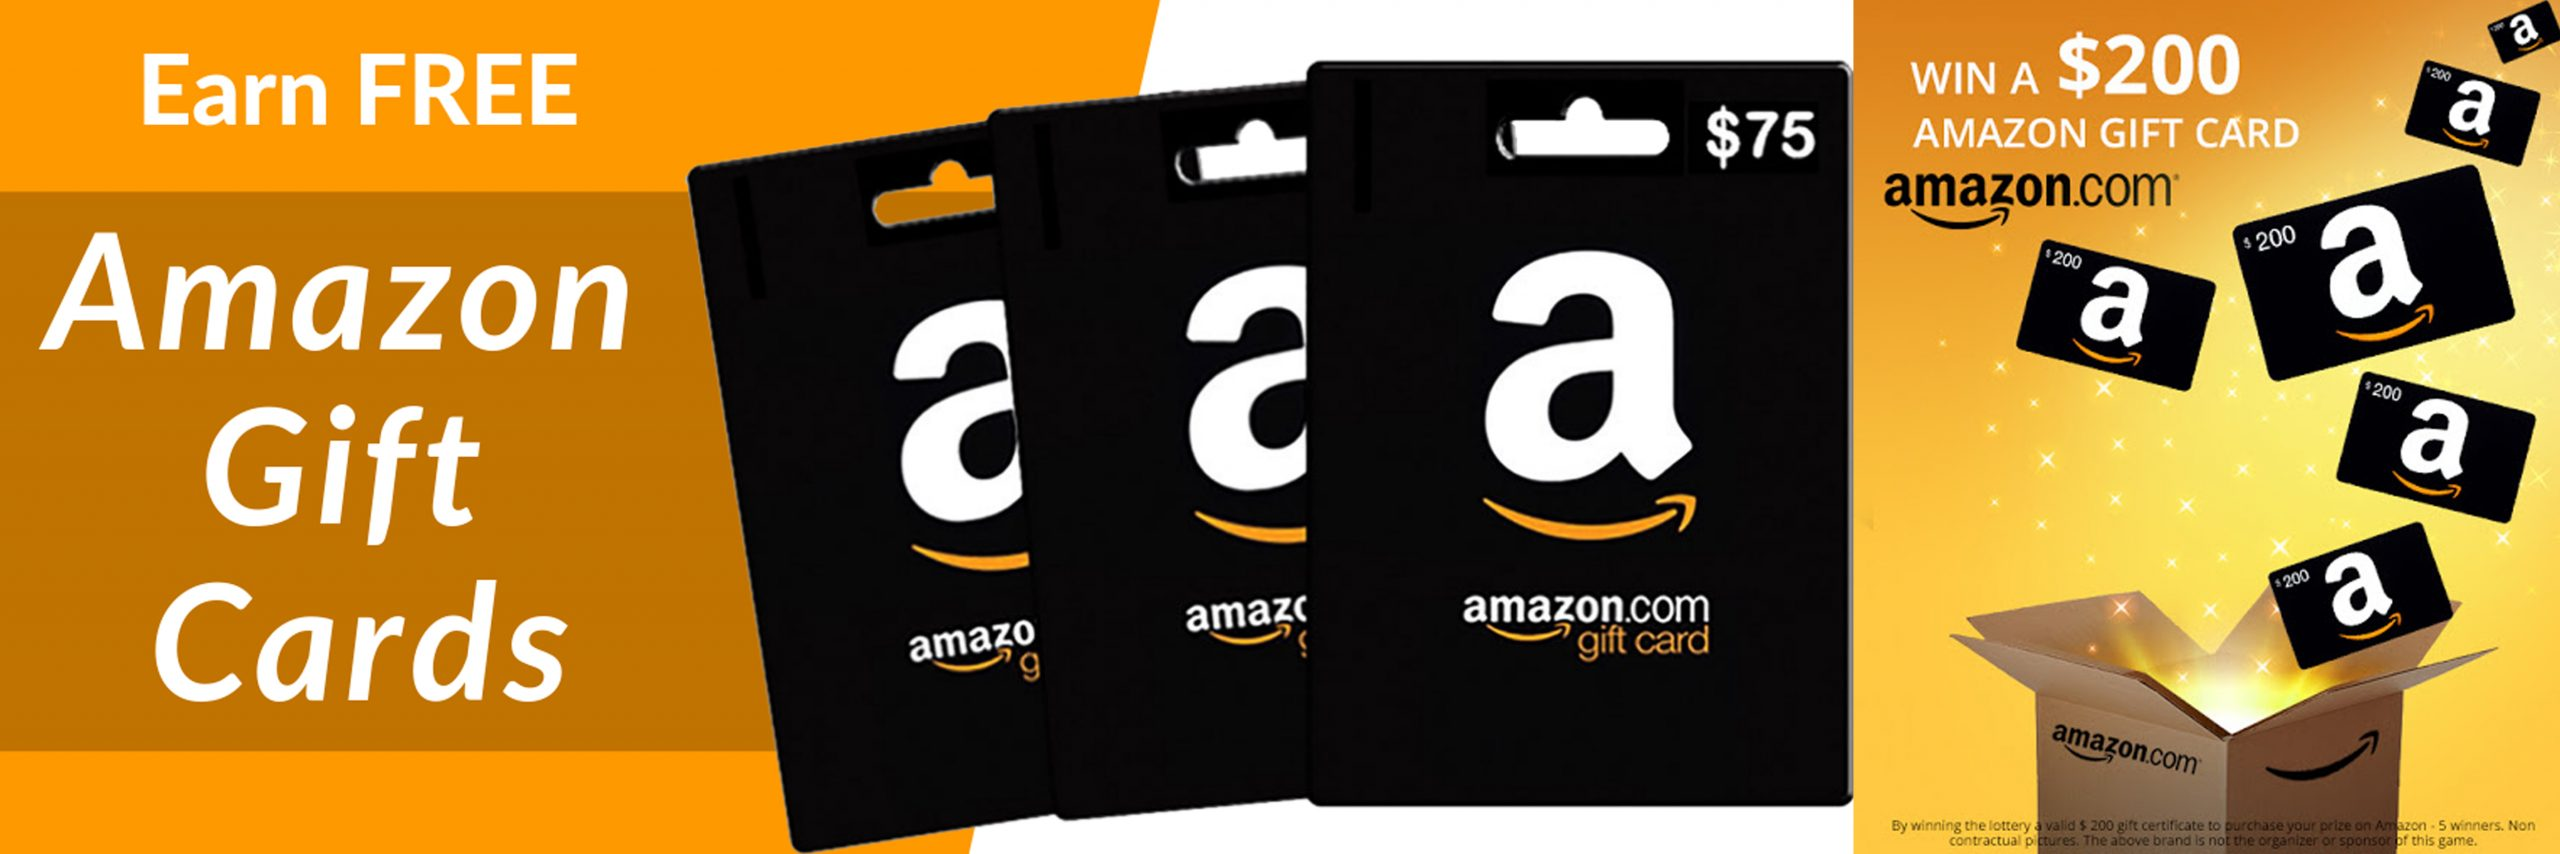 Step To redeeem amazon gift card